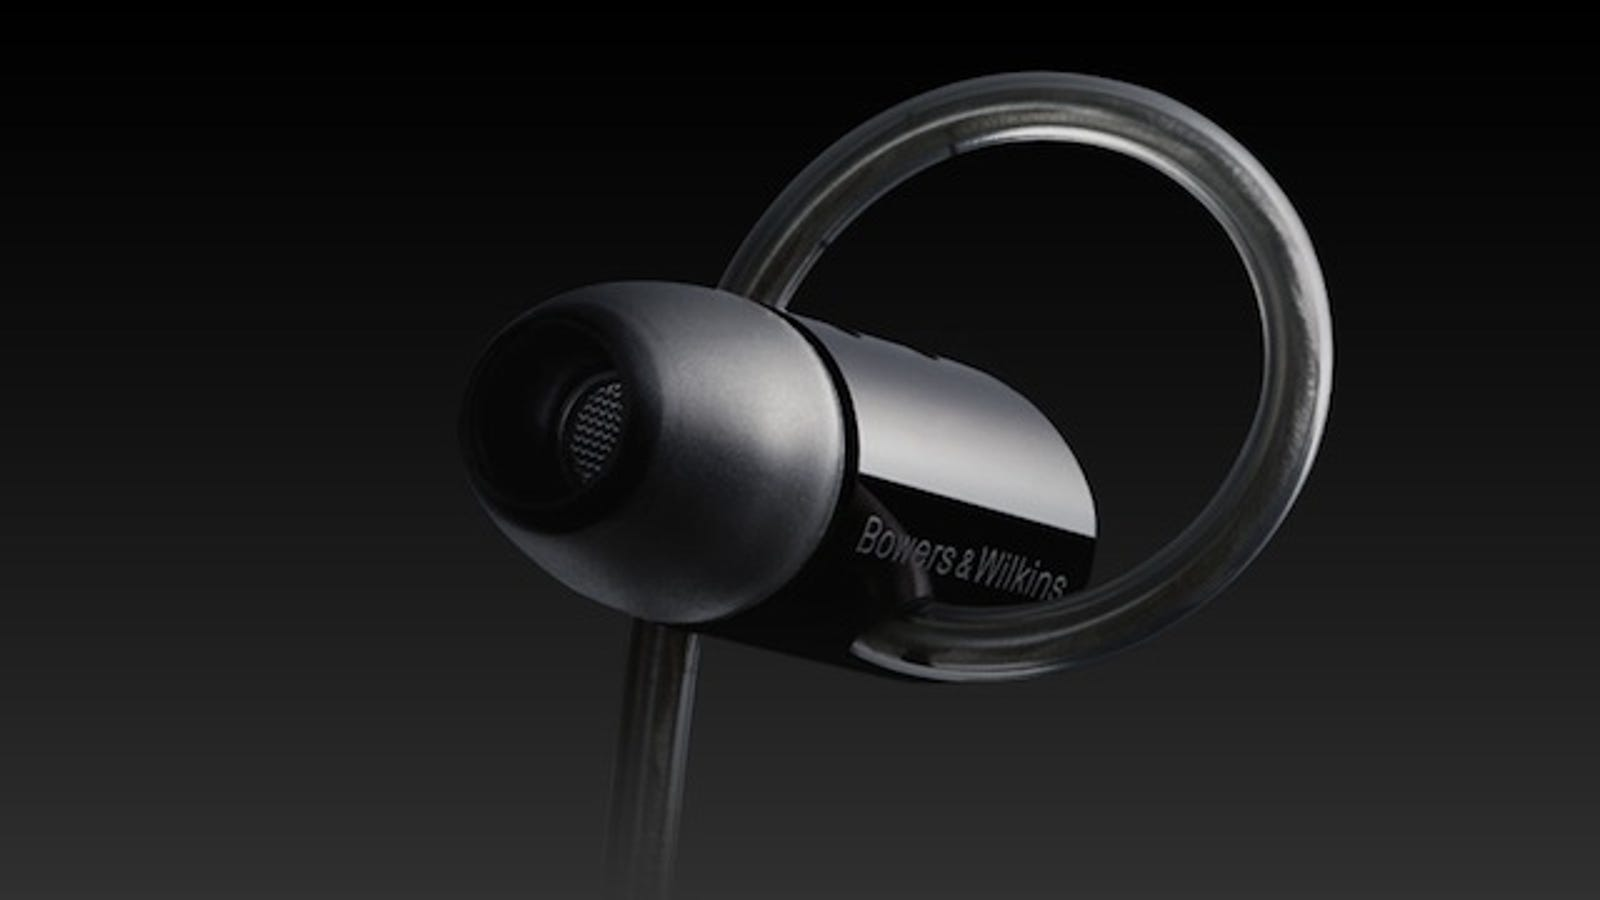 bose wireless over ear earbuds